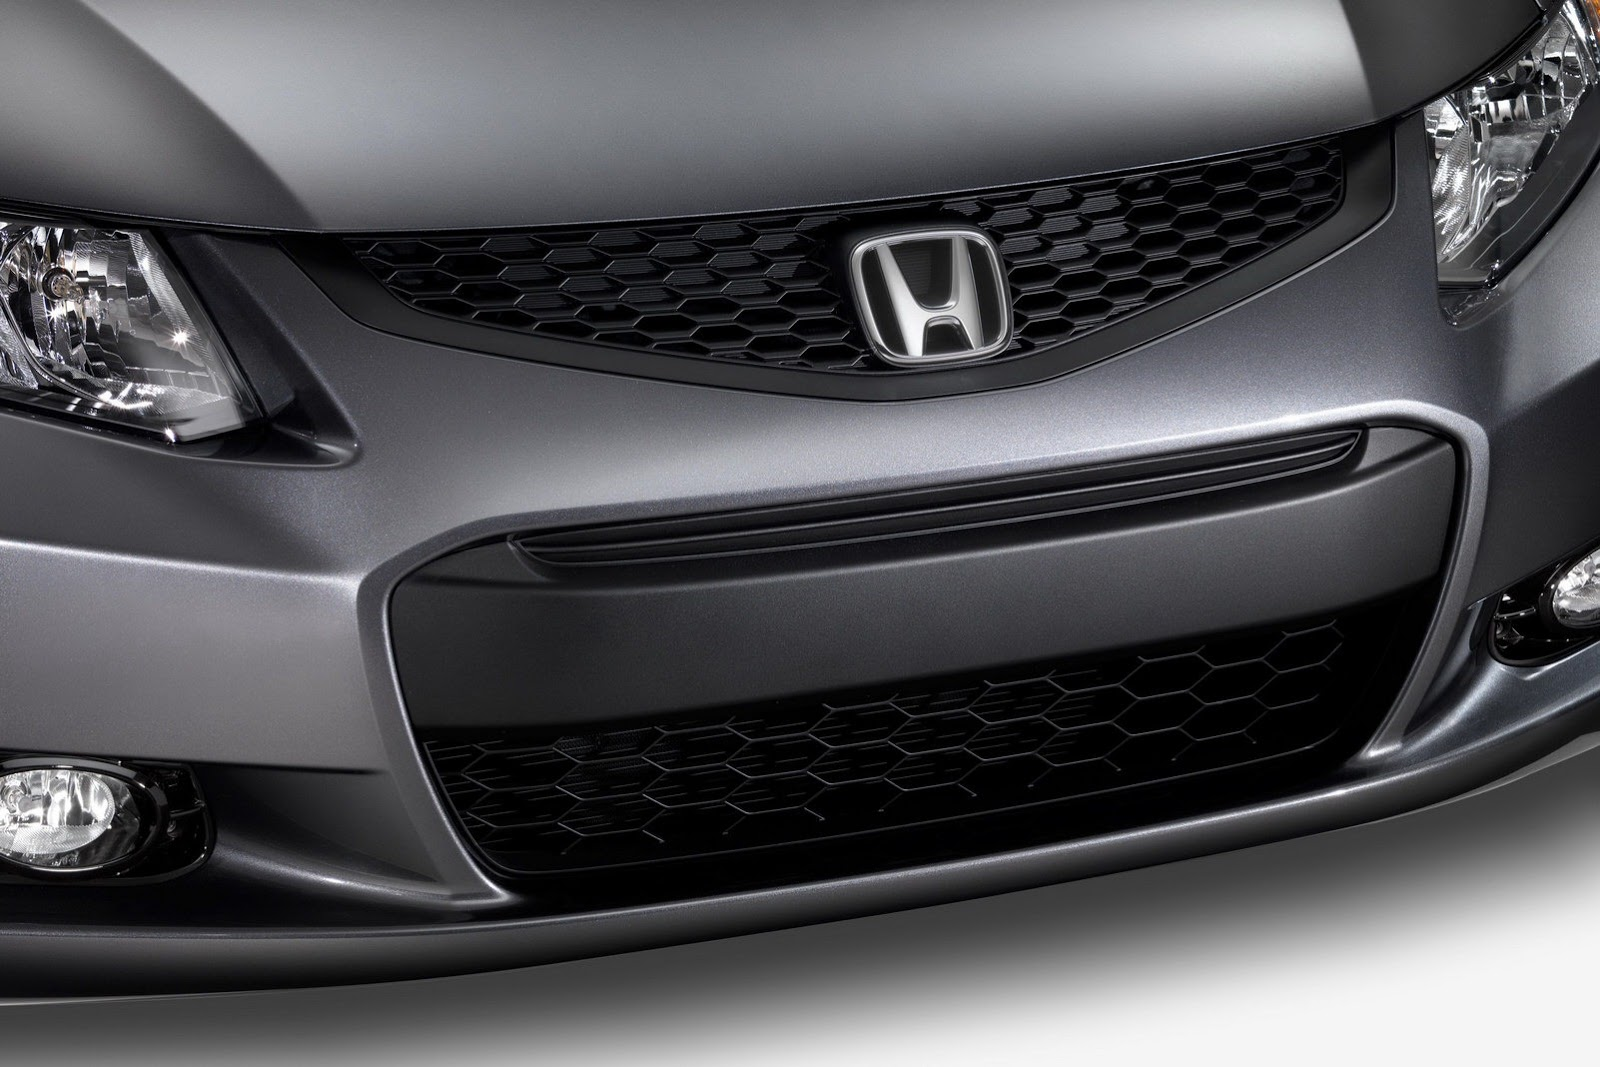 Honda Refreshes Civic For With New Grille And Added Kit Photo Gallery on Honda Civic Rear Suspension